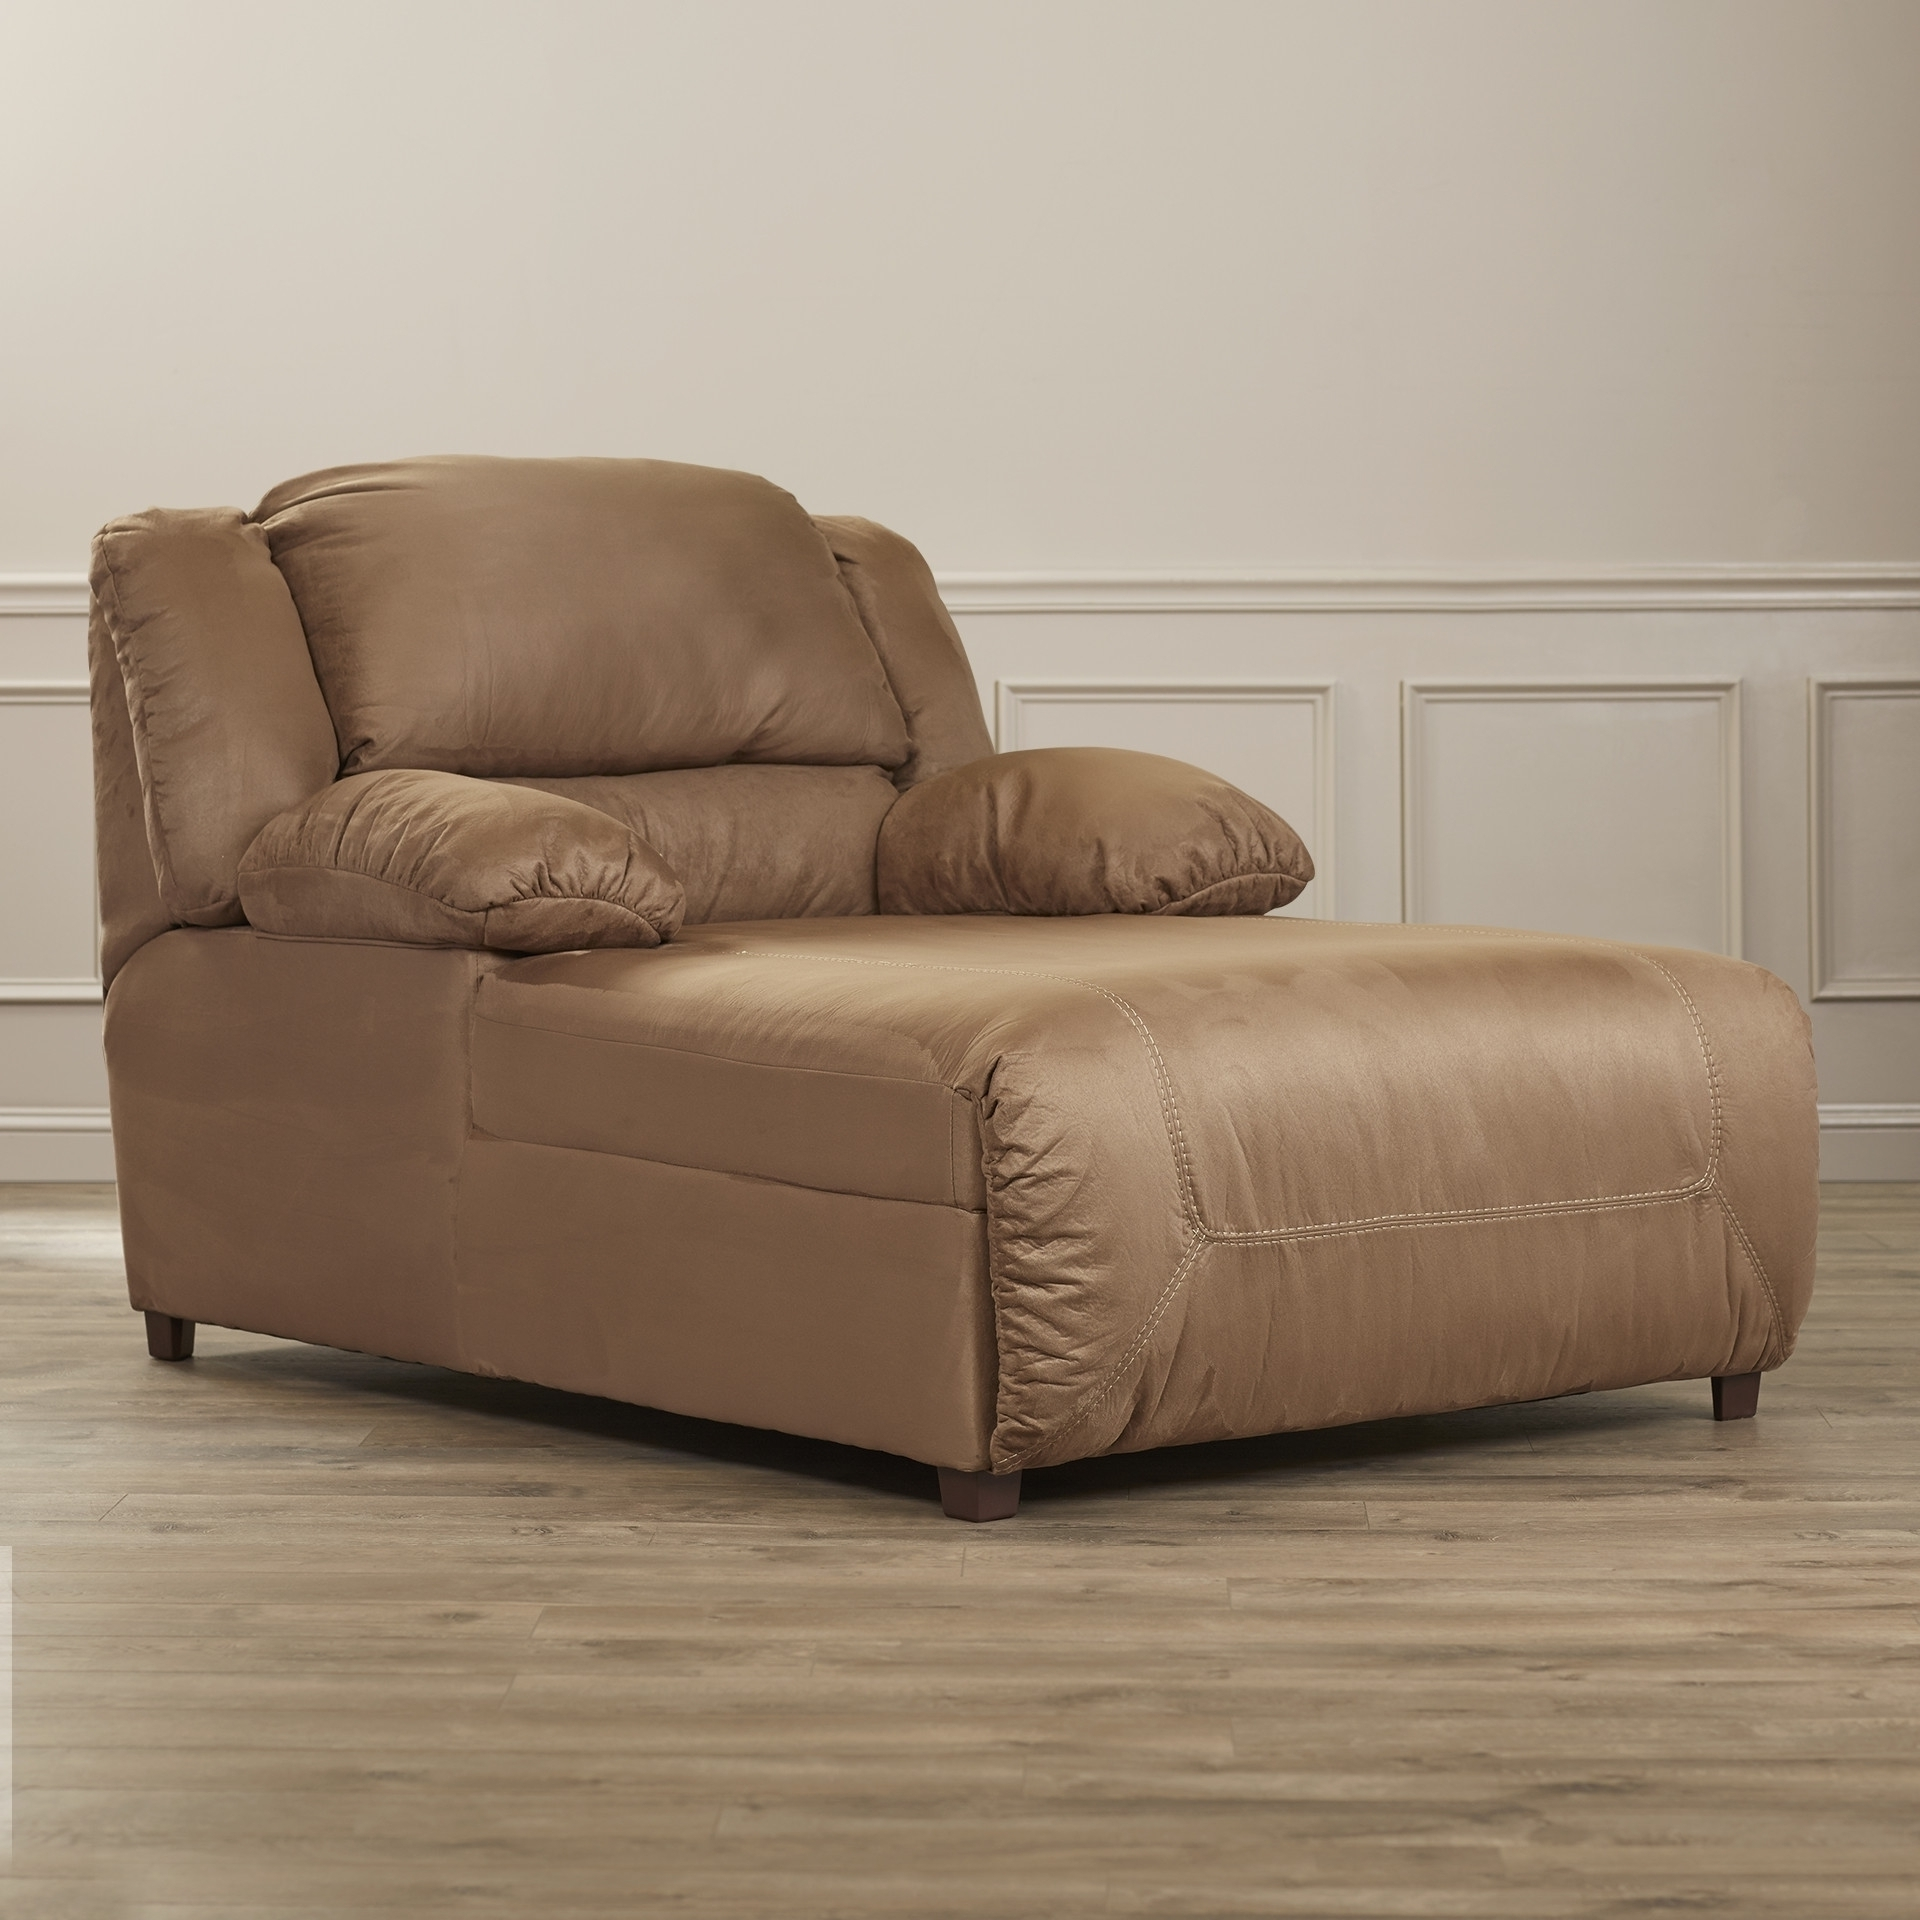 Uncategorized : Microfiber Chaise Lounge With Glorious Ultimate with Best and Newest Microfiber Chaise Lounge Chairs